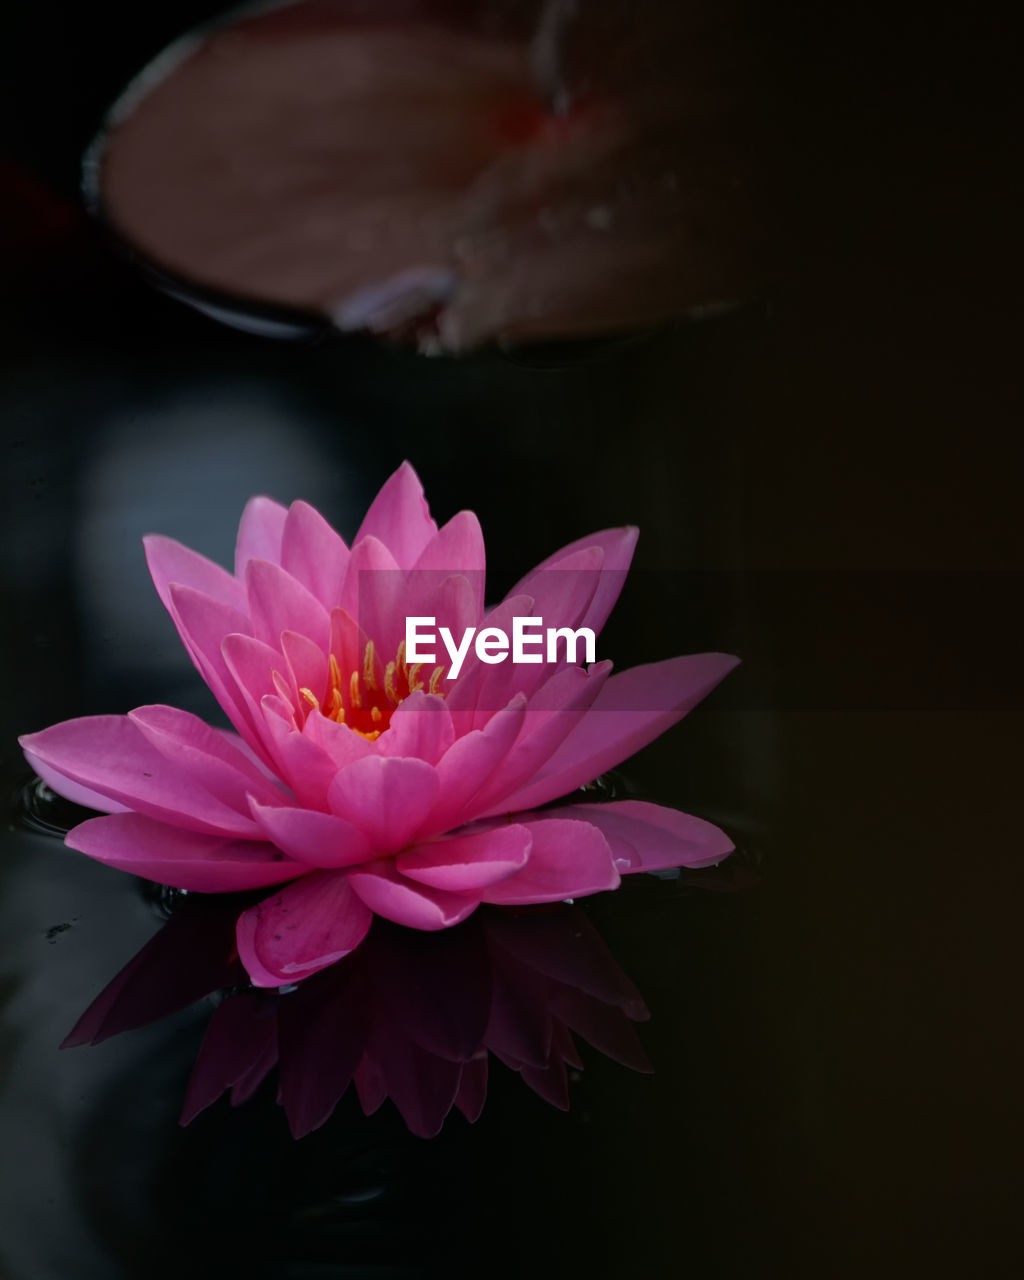 flowering plant, flower, freshness, beauty in nature, petal, plant, vulnerability, inflorescence, flower head, fragility, water lily, close-up, pink color, nature, water, no people, growth, lotus water lily, pollen, black background, floating on water, purple